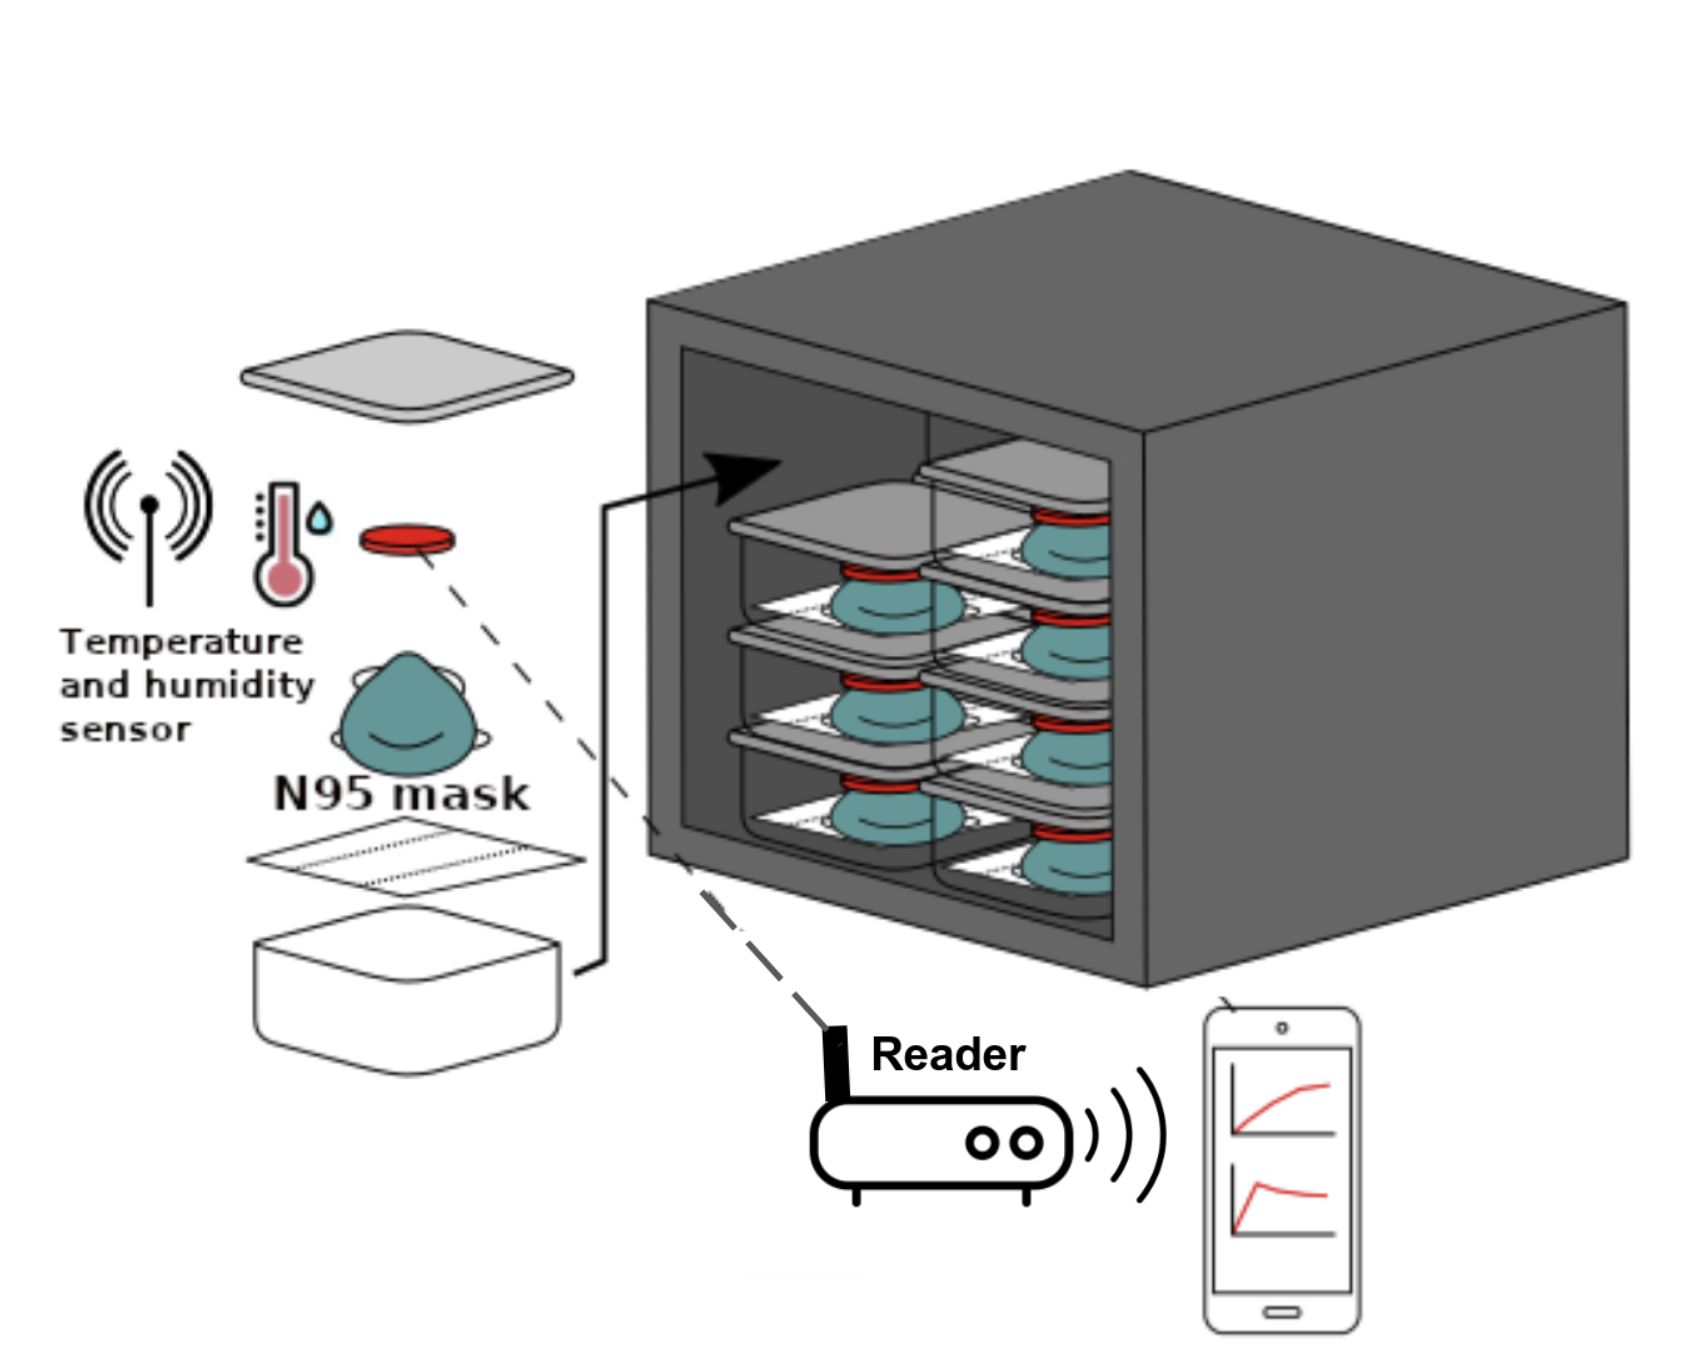 Illustration of the proposed research to instrument ovens with wirelessly powered sensors